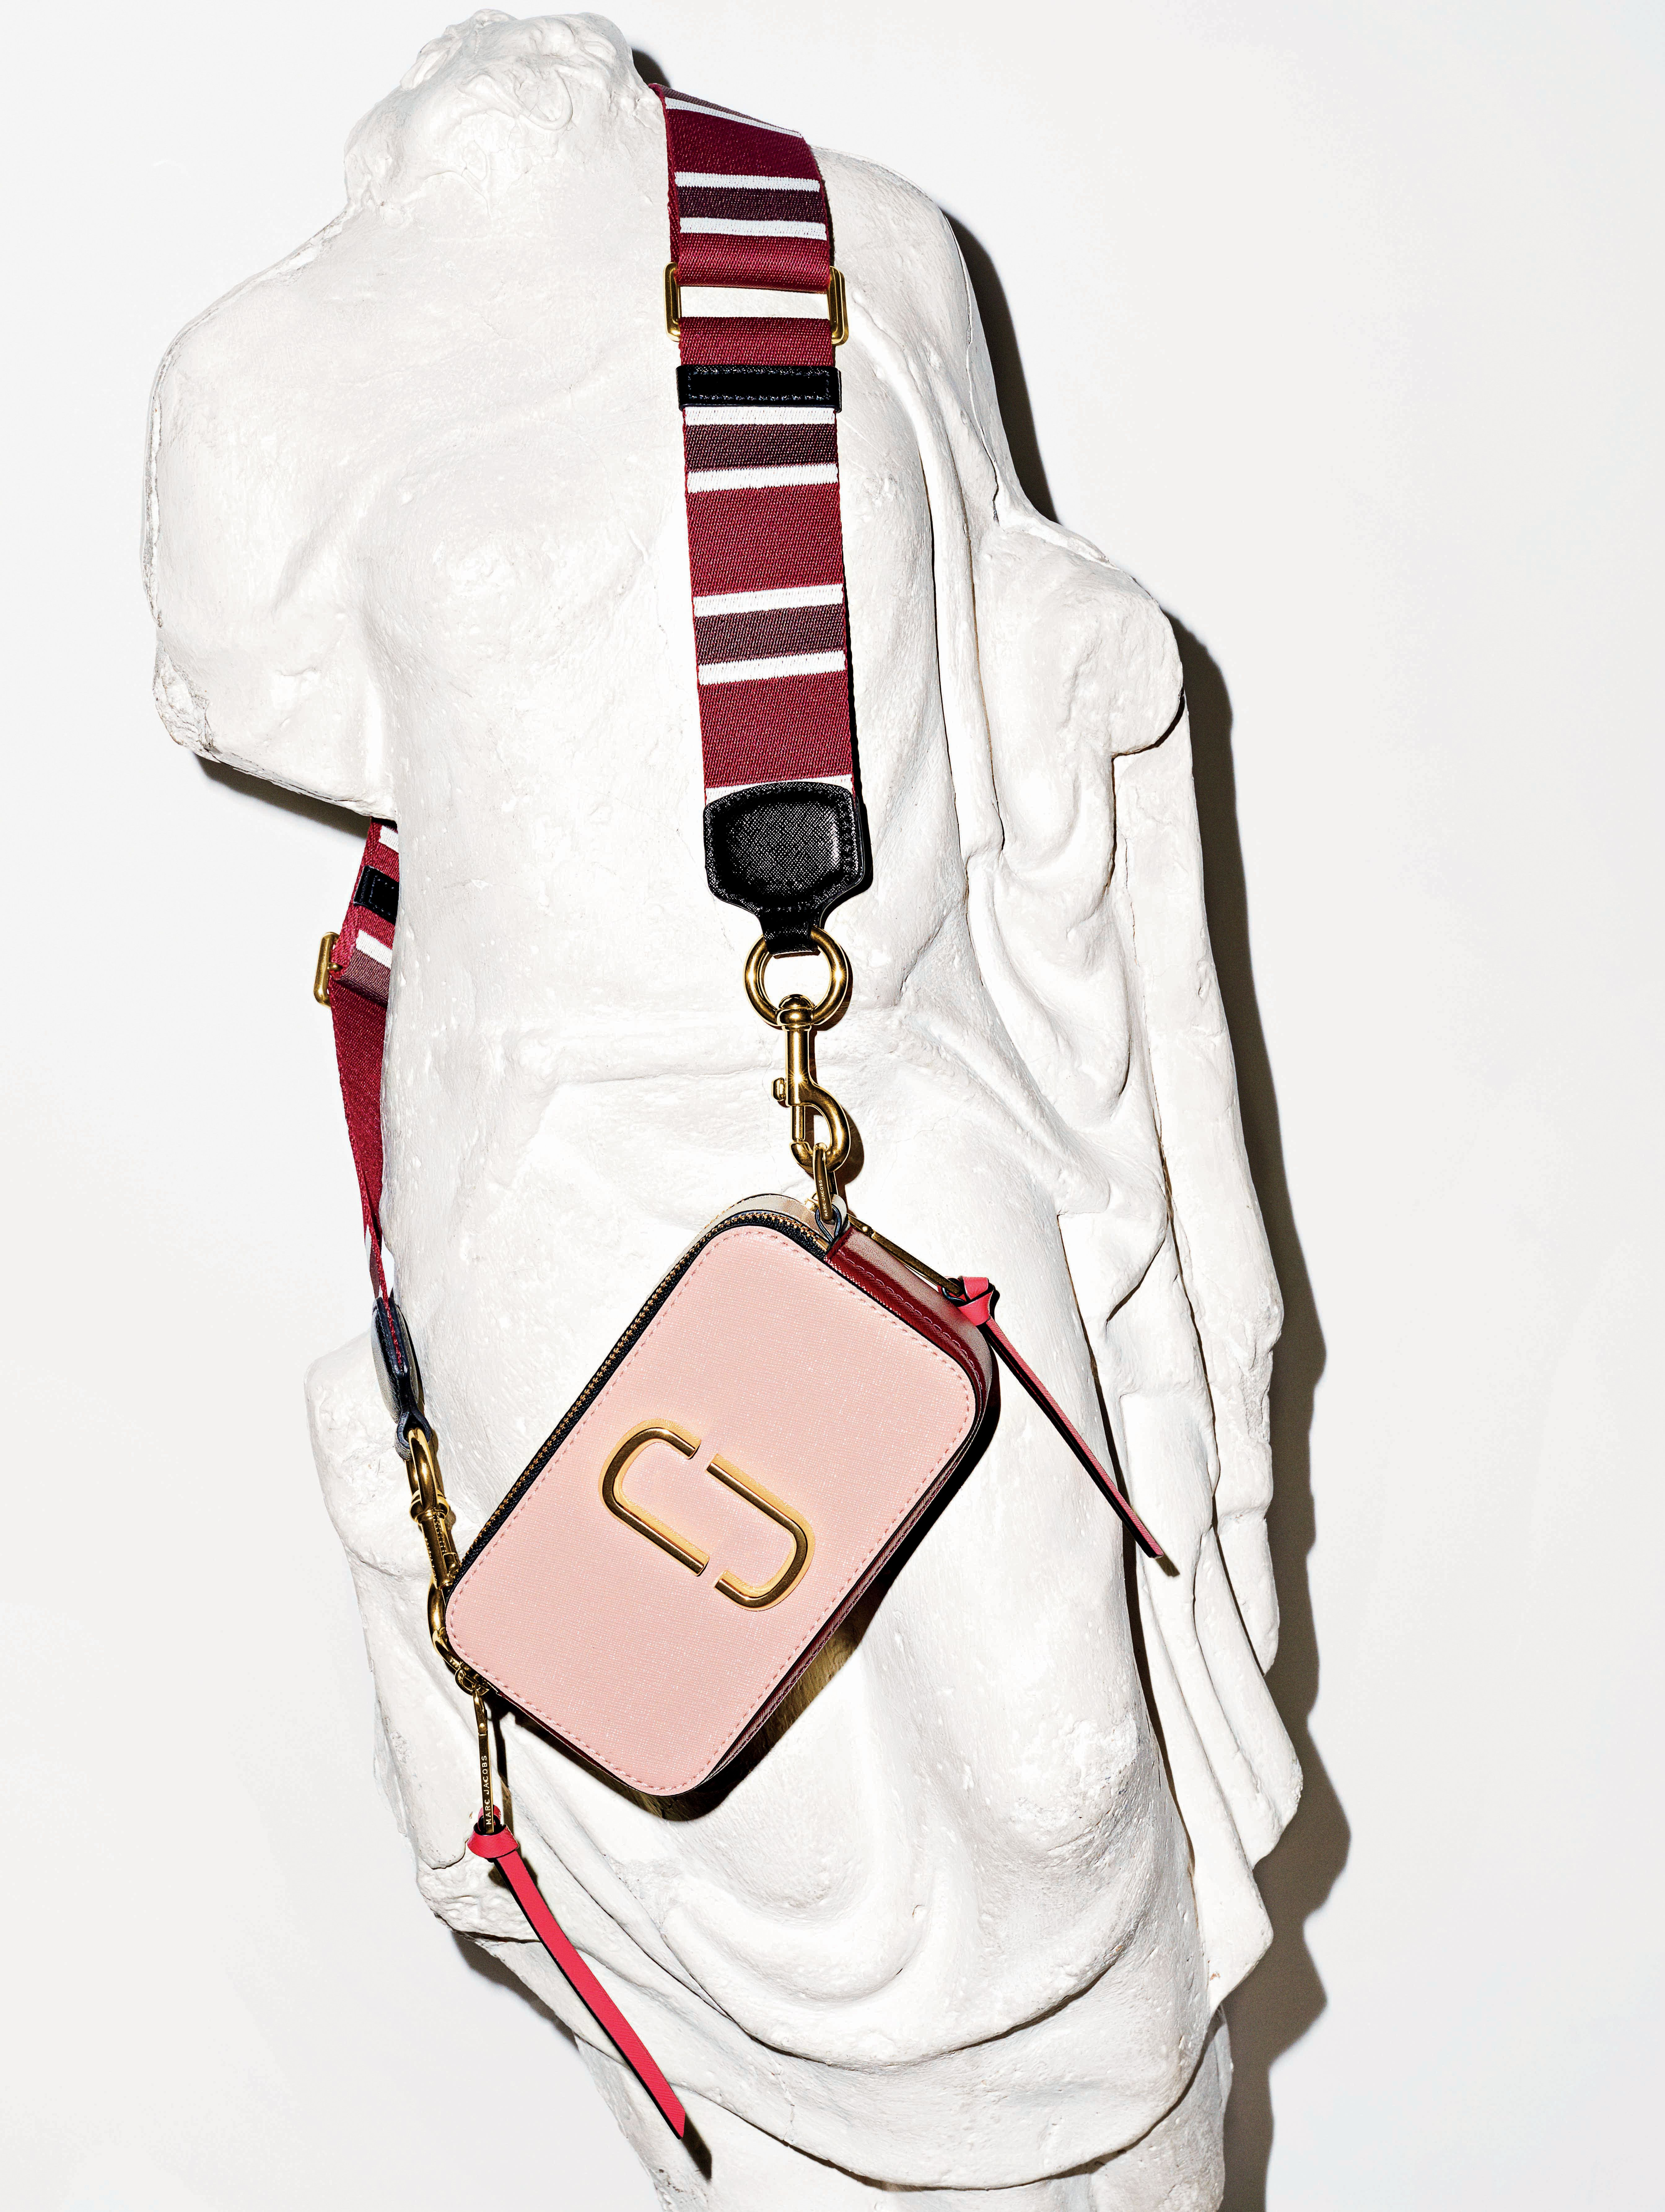 069f3b601bc2 Marc Jacobs Snapshot Bag in Rose